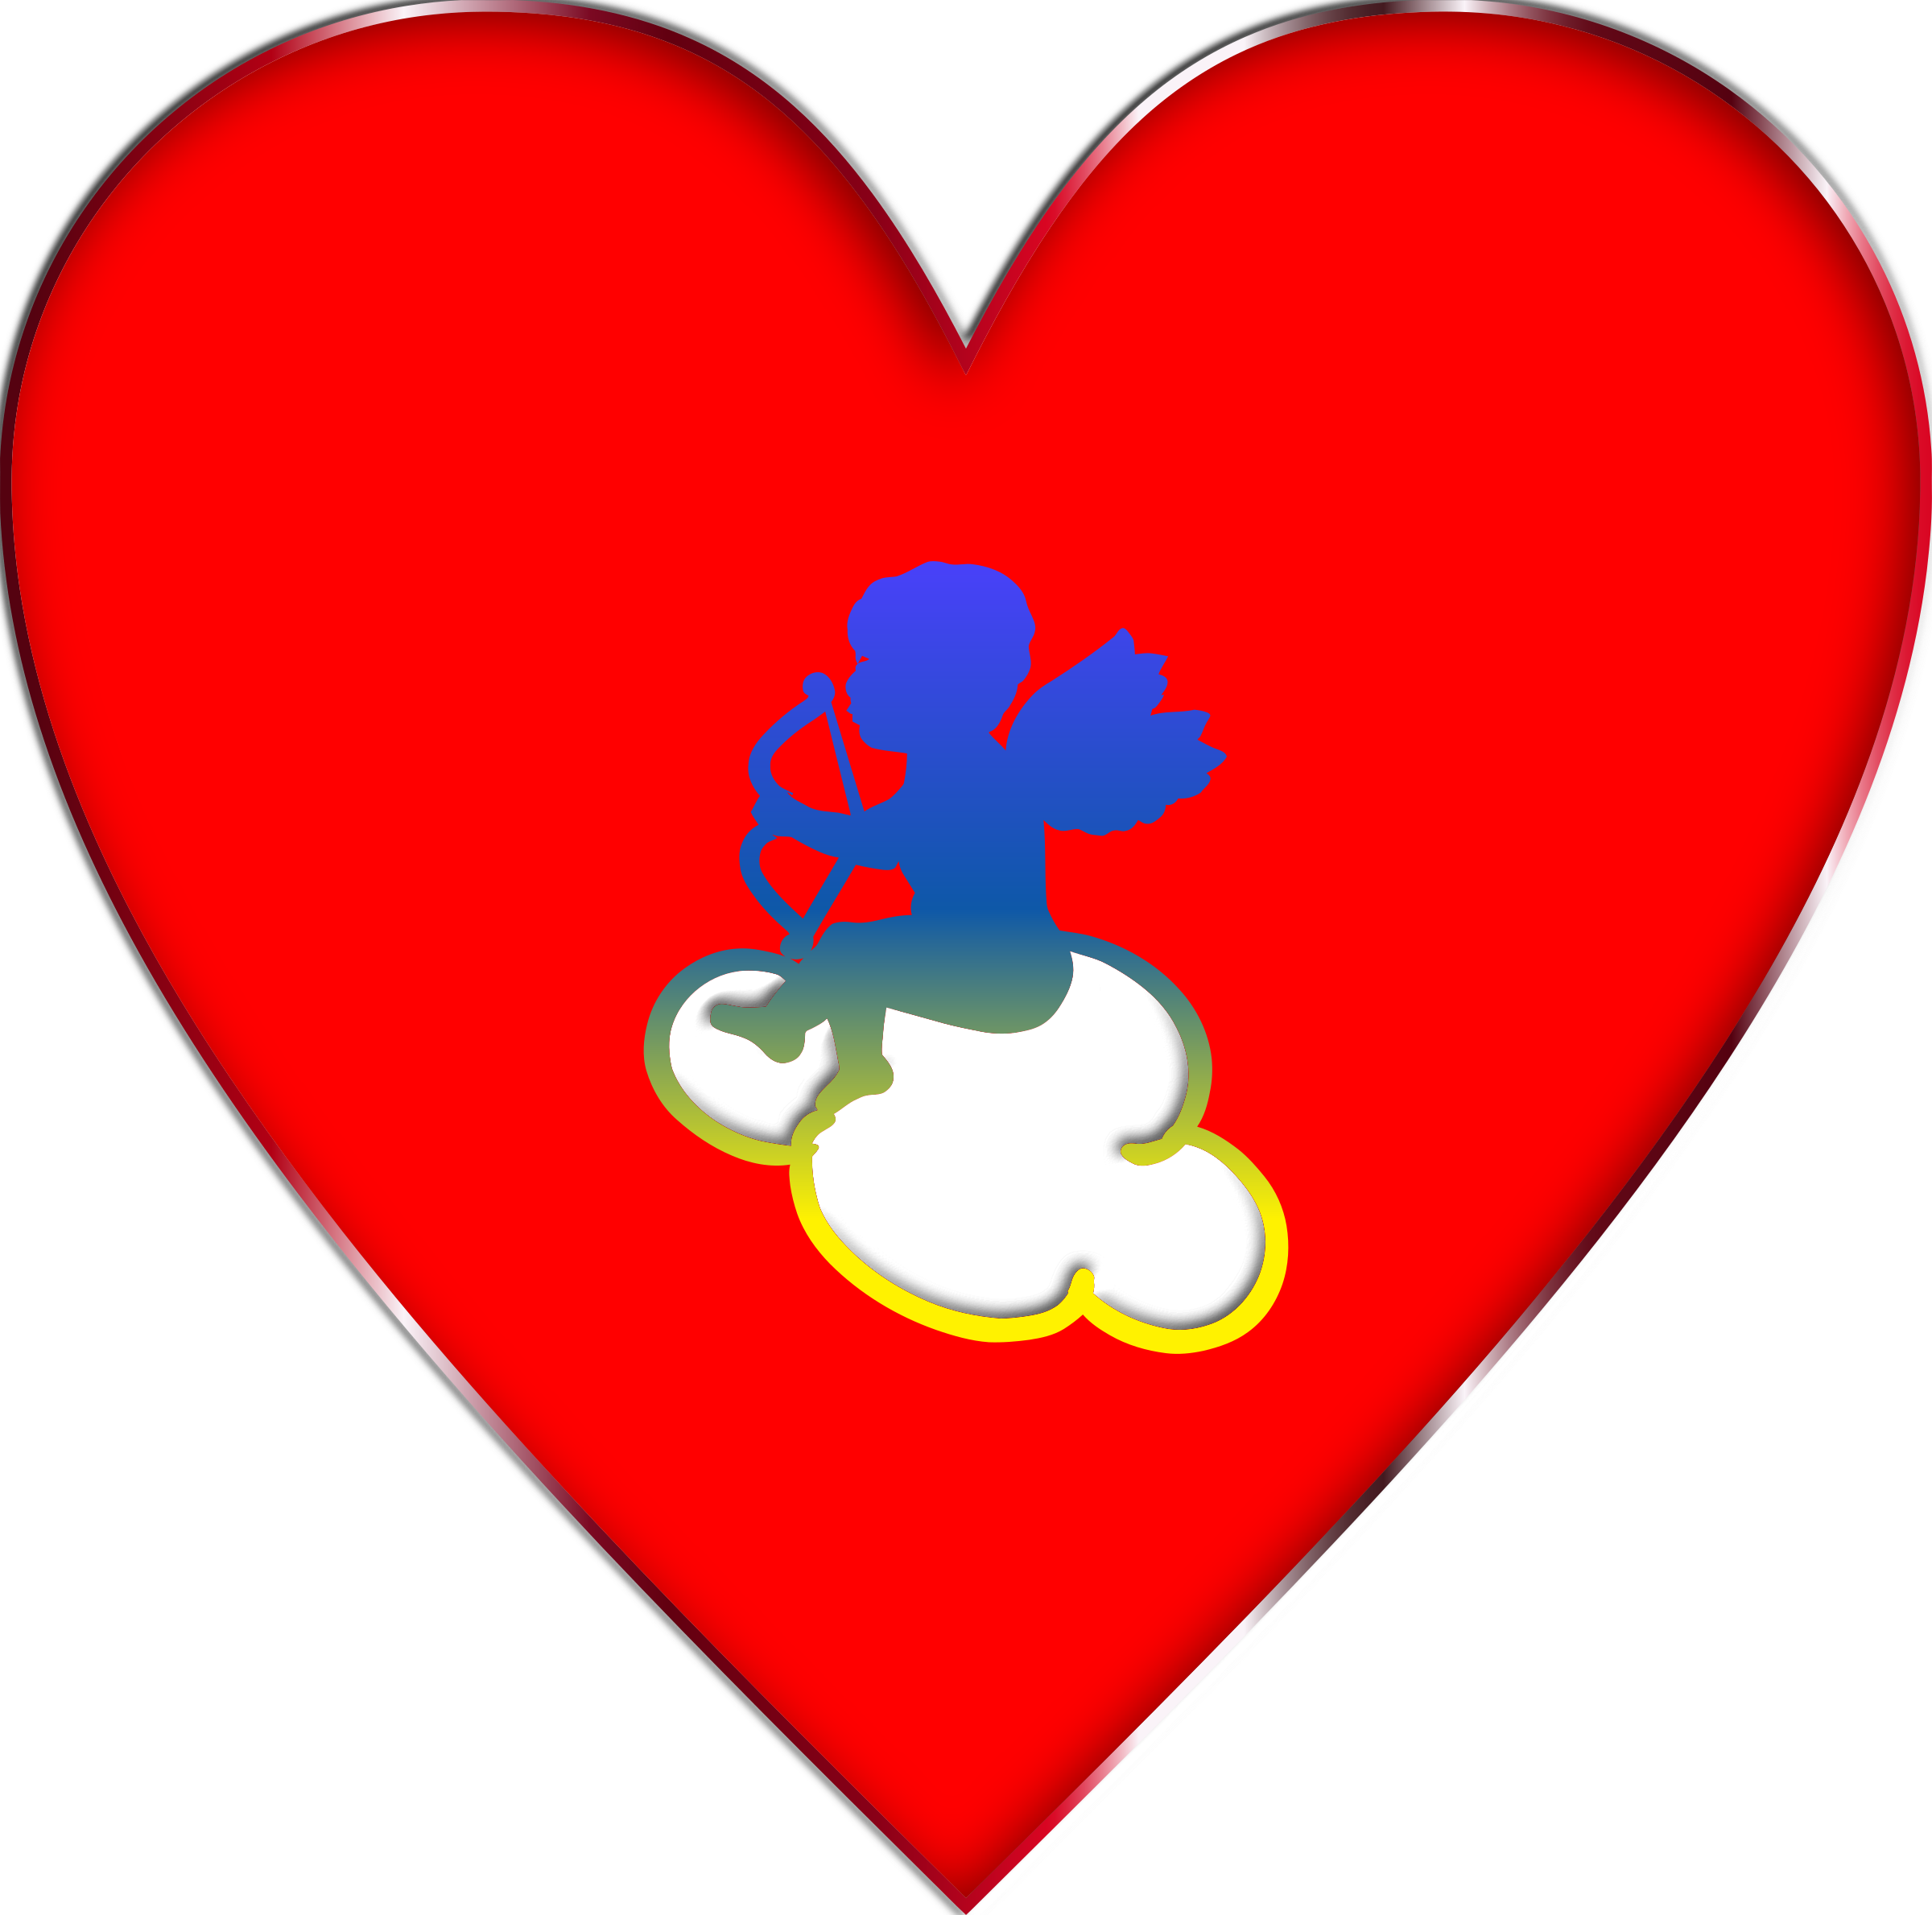 Cupid Heart Png | www.pixshark.com - Images Galleries With ...